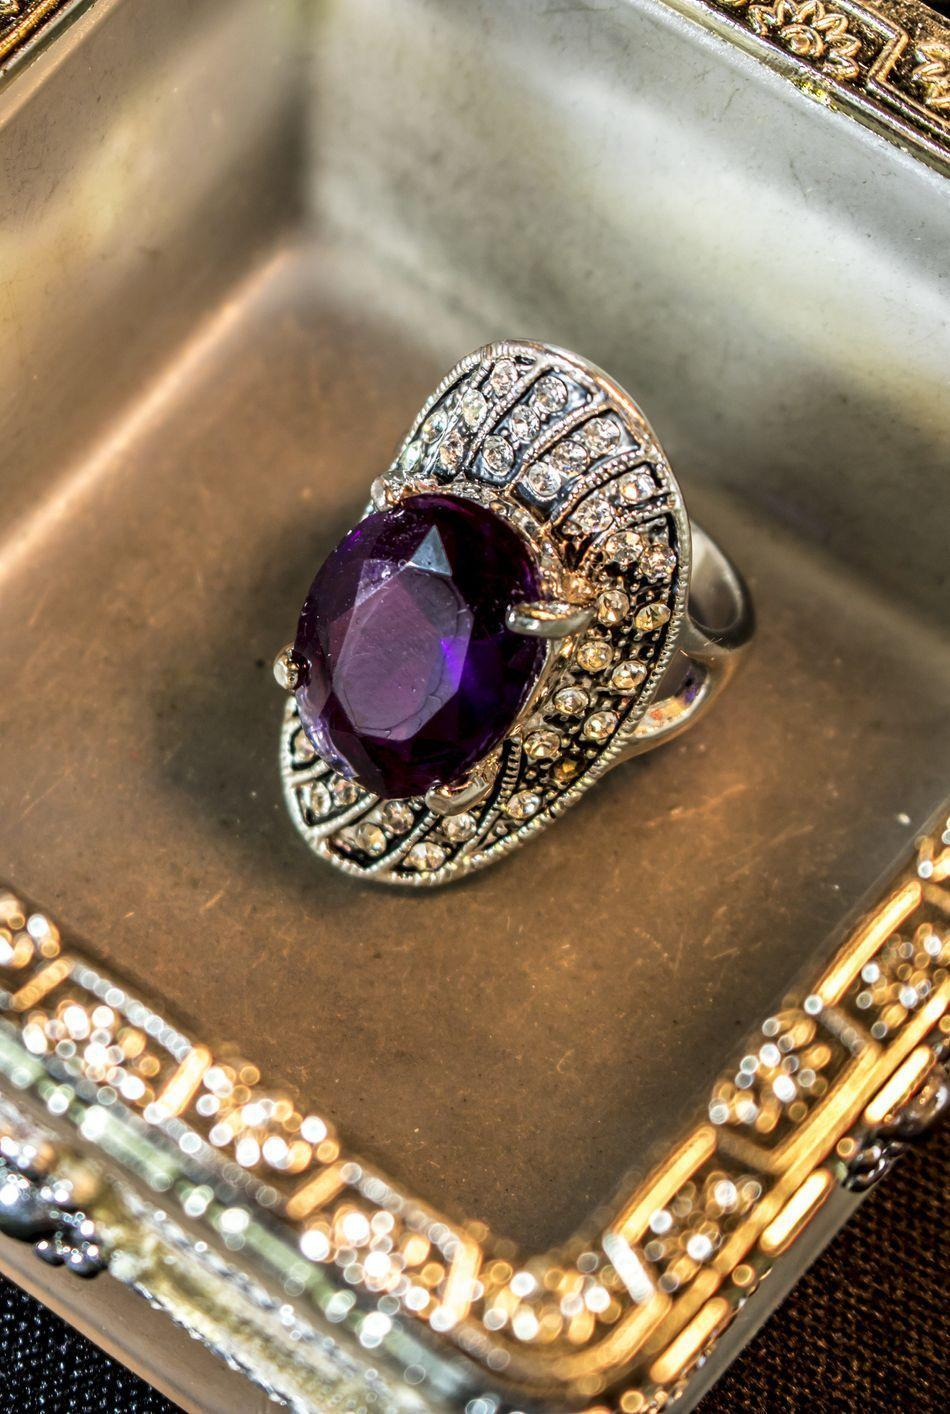 <p>Due to art deco jewelry featuring a mix of diamonds with colored gemstones, it became common for an engagement ring's center stone to be fitted with a sapphire, emerald, or ruby instead of a diamond. </p>